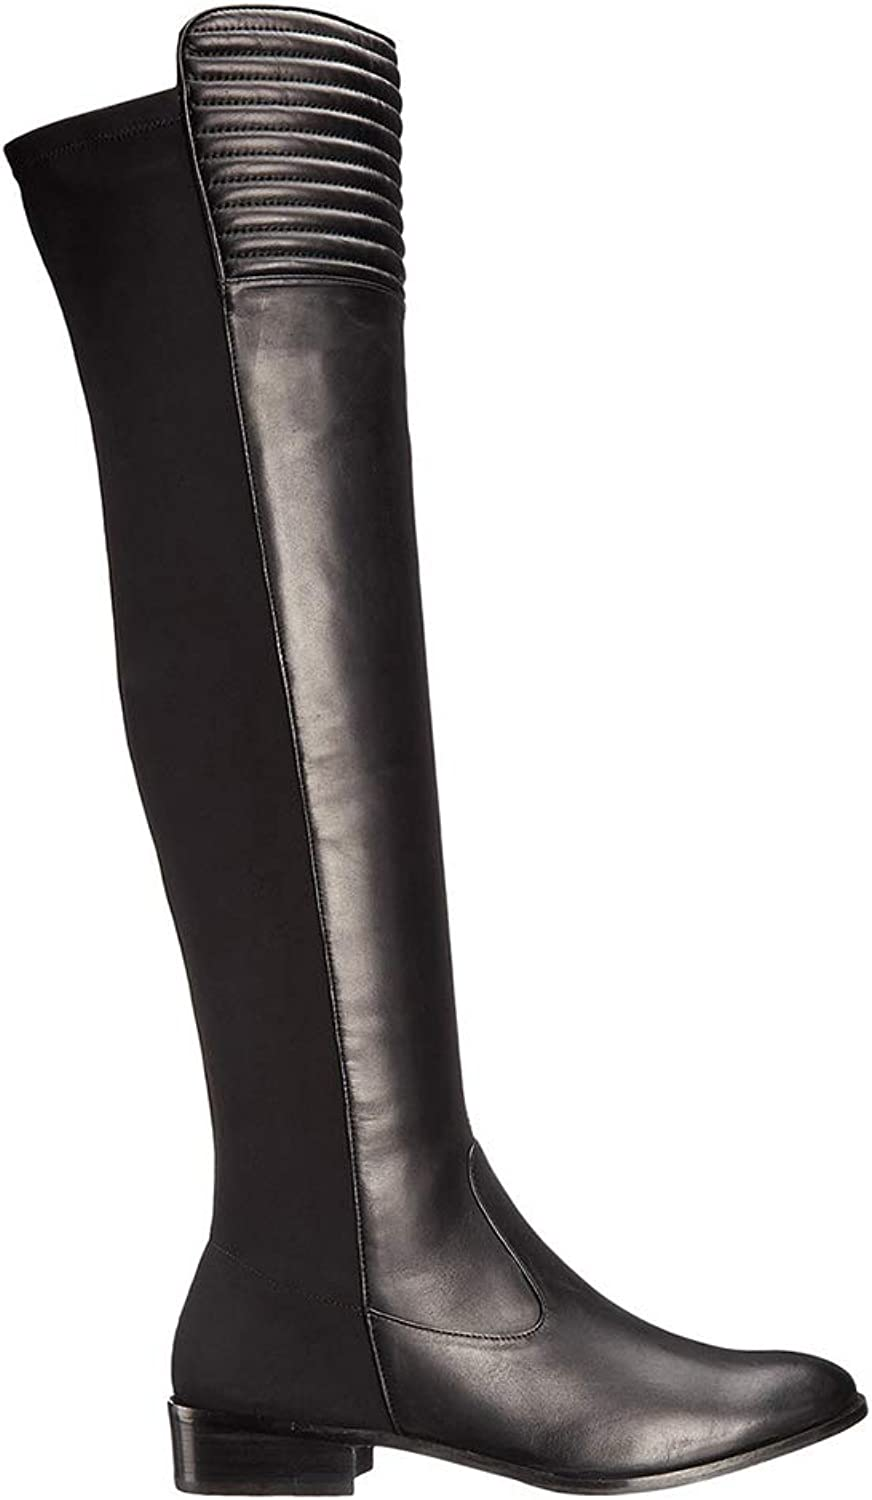 Boots Ladies, Knight Boots and Knee Boots Slim   Leather Side Zip Women's Boots